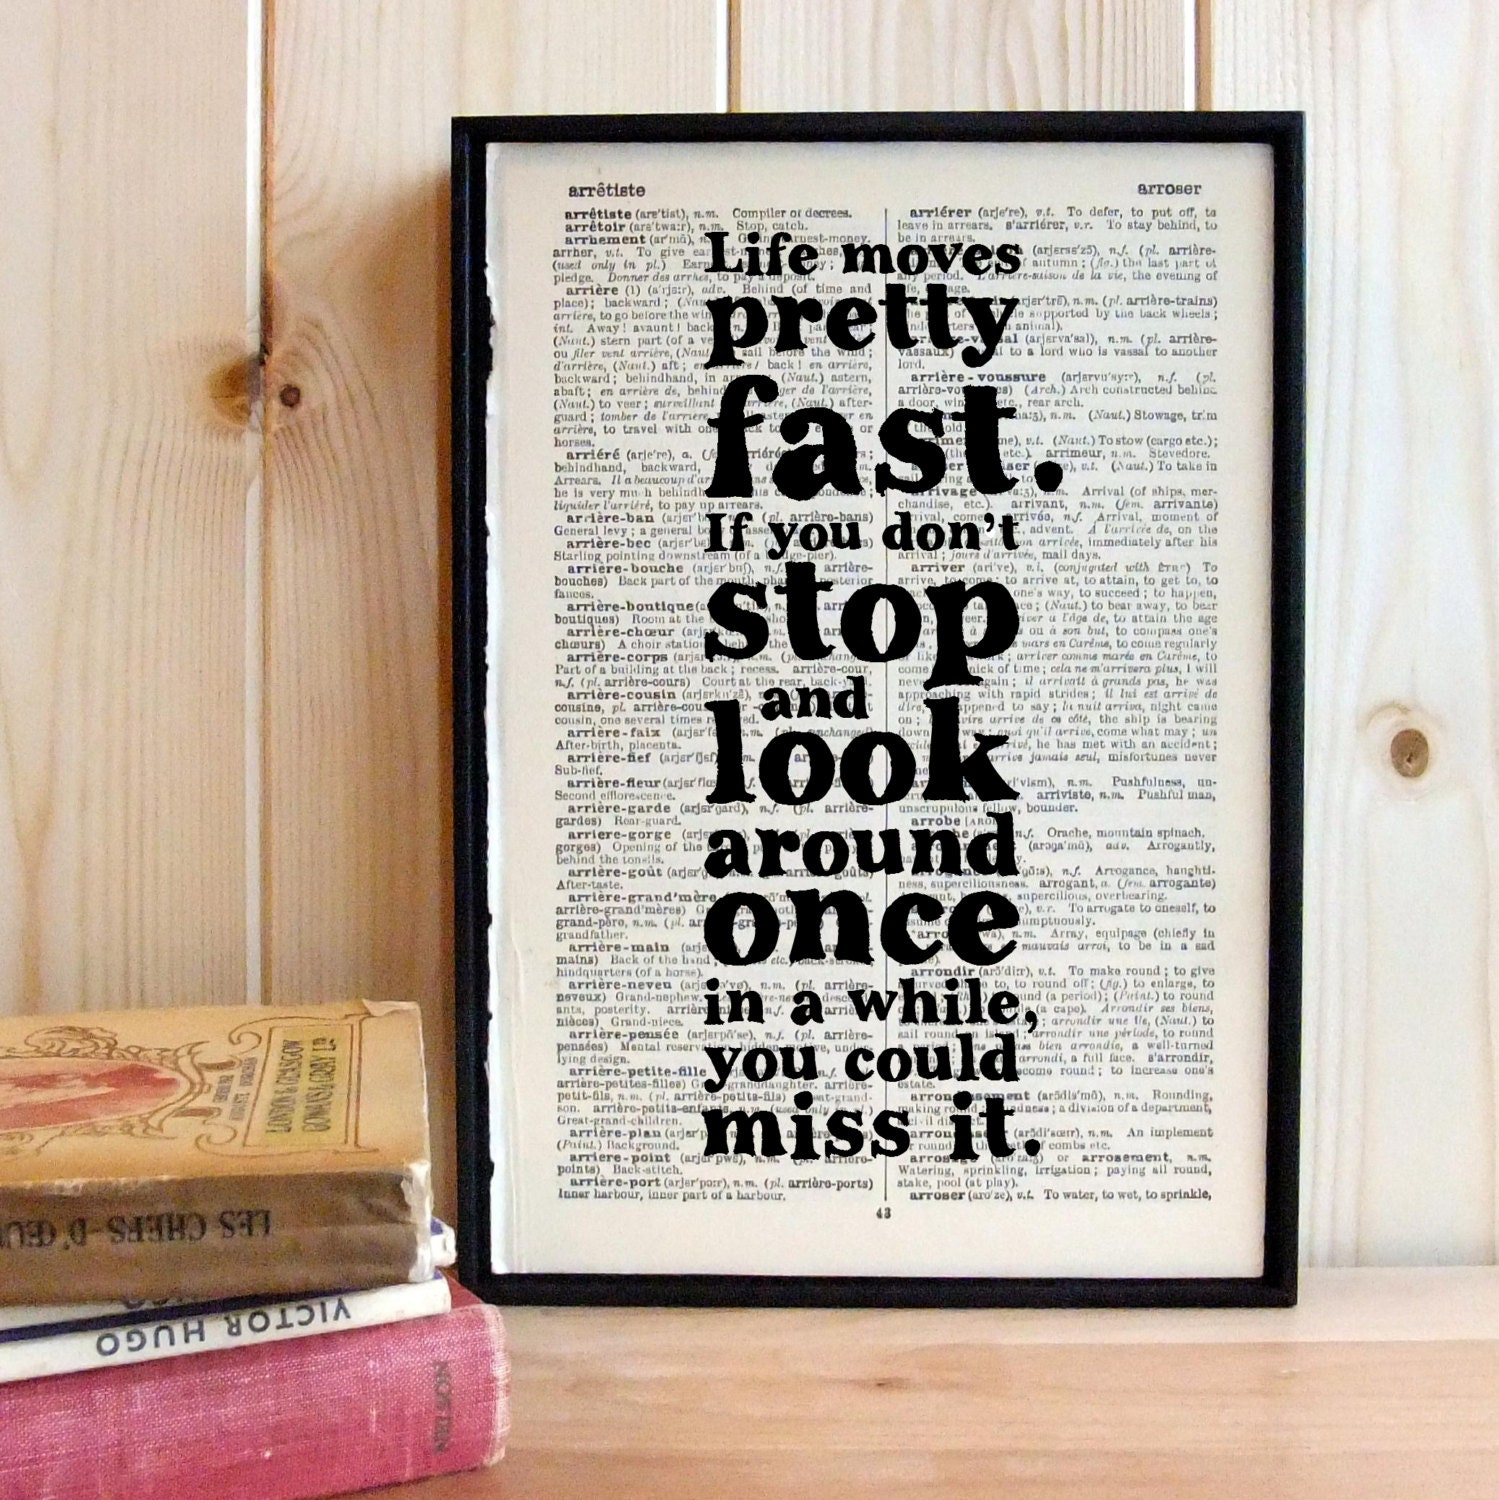 Inspirational Quote Life Moves Pretty Fast Ferris Bueller framed art on vintage book page graduation gift - BookishlyUK